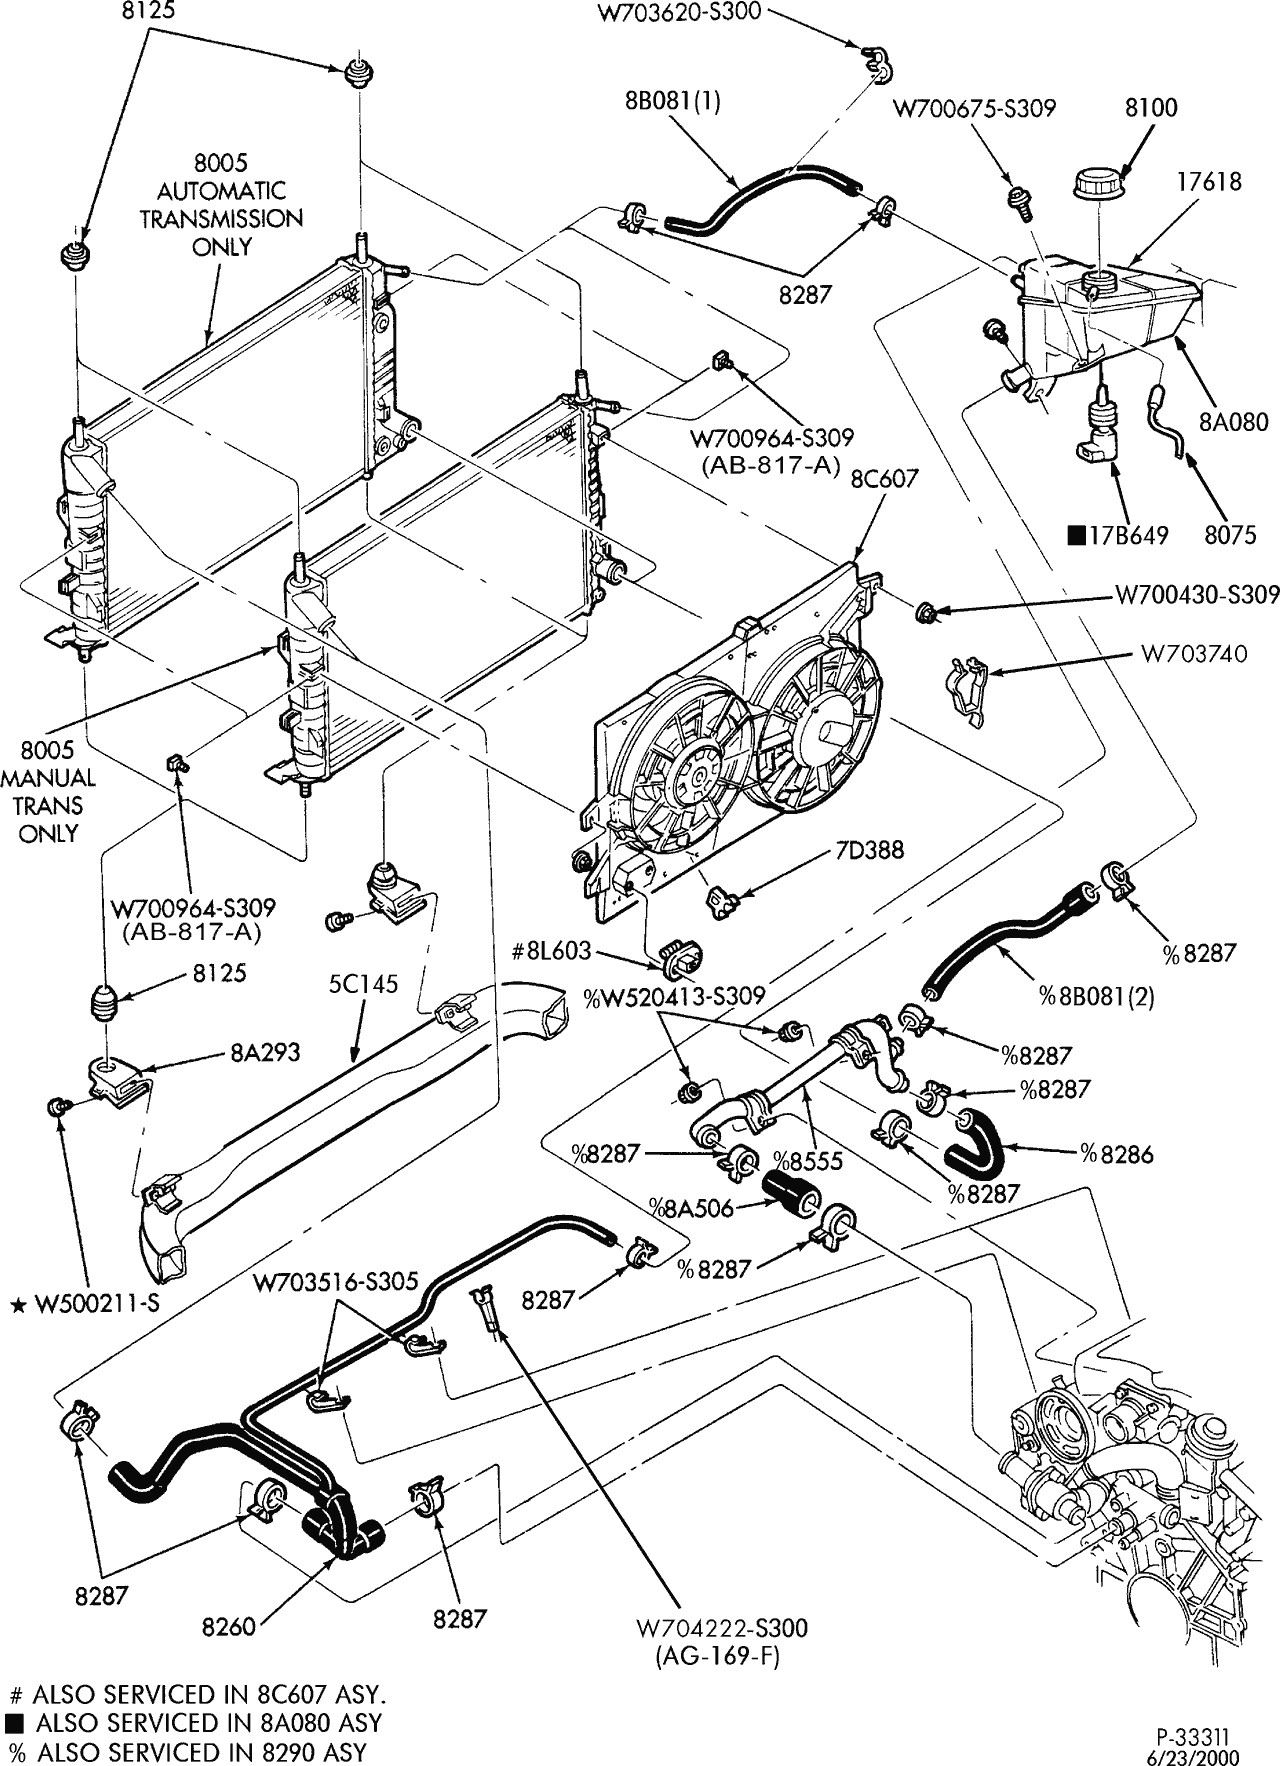 hight resolution of 1998 ford contour mercury mystique electrical troubleshooting manual source 2001 mercury cougar engine diagram do